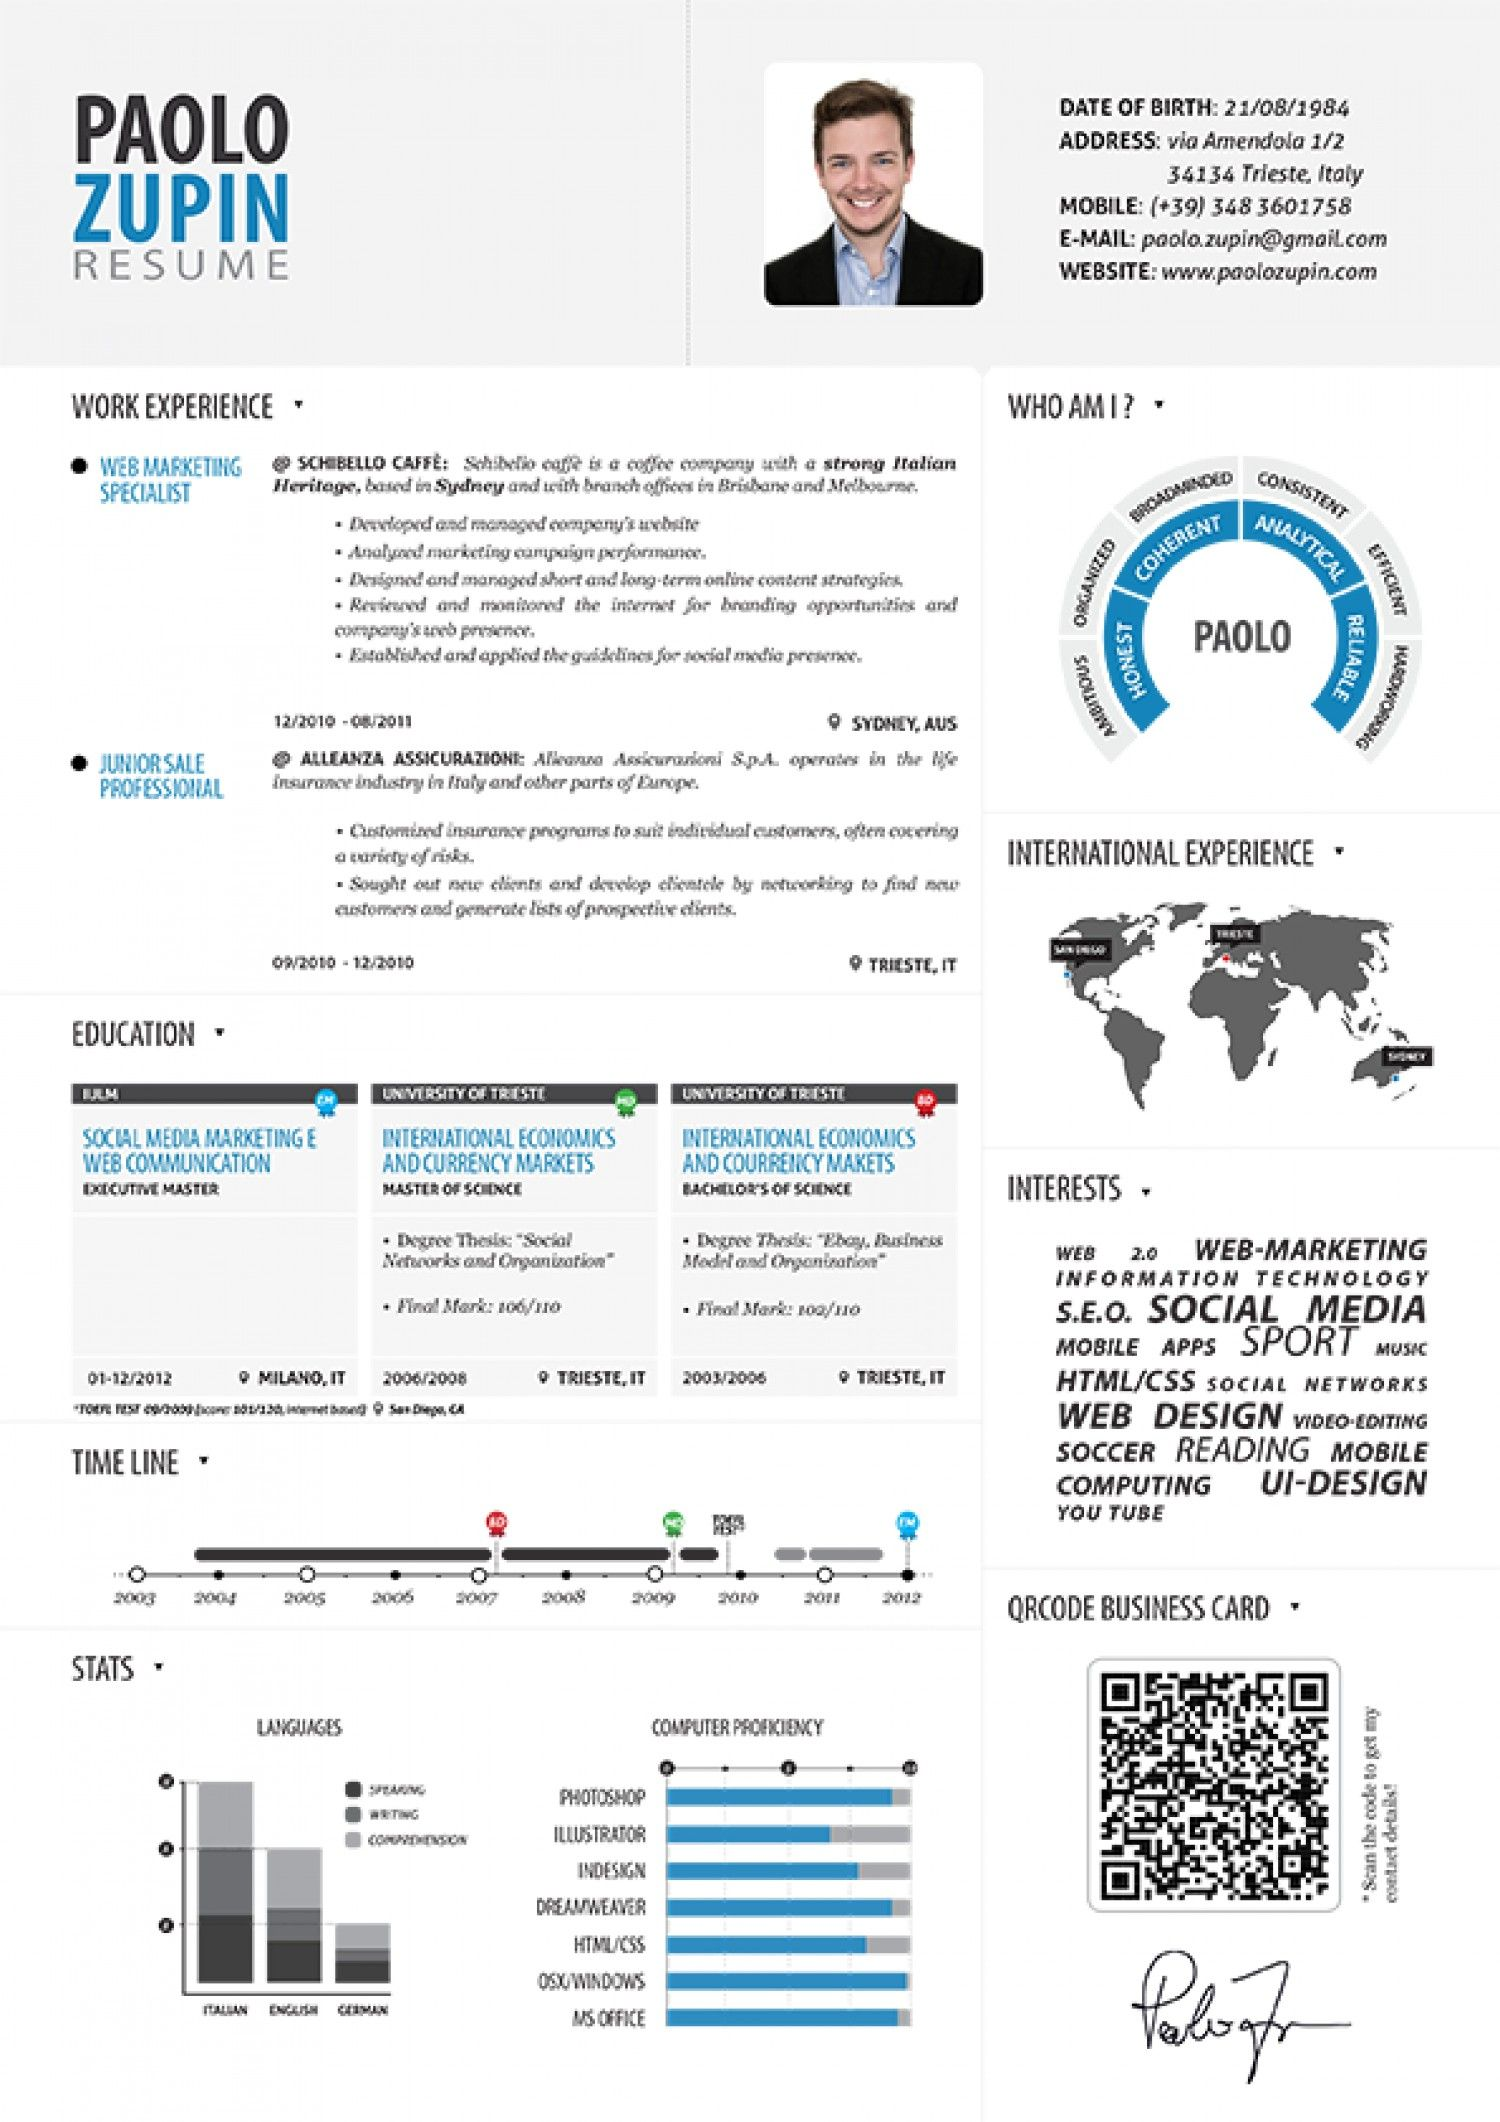 Opposenewapstandardsus  Stunning  Images About Infographic Resume On Pinterest  Infographic  With Engaging  Images About Infographic Resume On Pinterest  Infographic Resume Resume And Business Resume With Cool Personal Resume Examples Also Curriculum Vitae Versus Resume In Addition Senior Manager Resume And How To Become A Certified Resume Writer As Well As What Is The Best Resume Builder Additionally Free Resume Templates Download For Microsoft Word From Pinterestcom With Opposenewapstandardsus  Engaging  Images About Infographic Resume On Pinterest  Infographic  With Cool  Images About Infographic Resume On Pinterest  Infographic Resume Resume And Business Resume And Stunning Personal Resume Examples Also Curriculum Vitae Versus Resume In Addition Senior Manager Resume From Pinterestcom